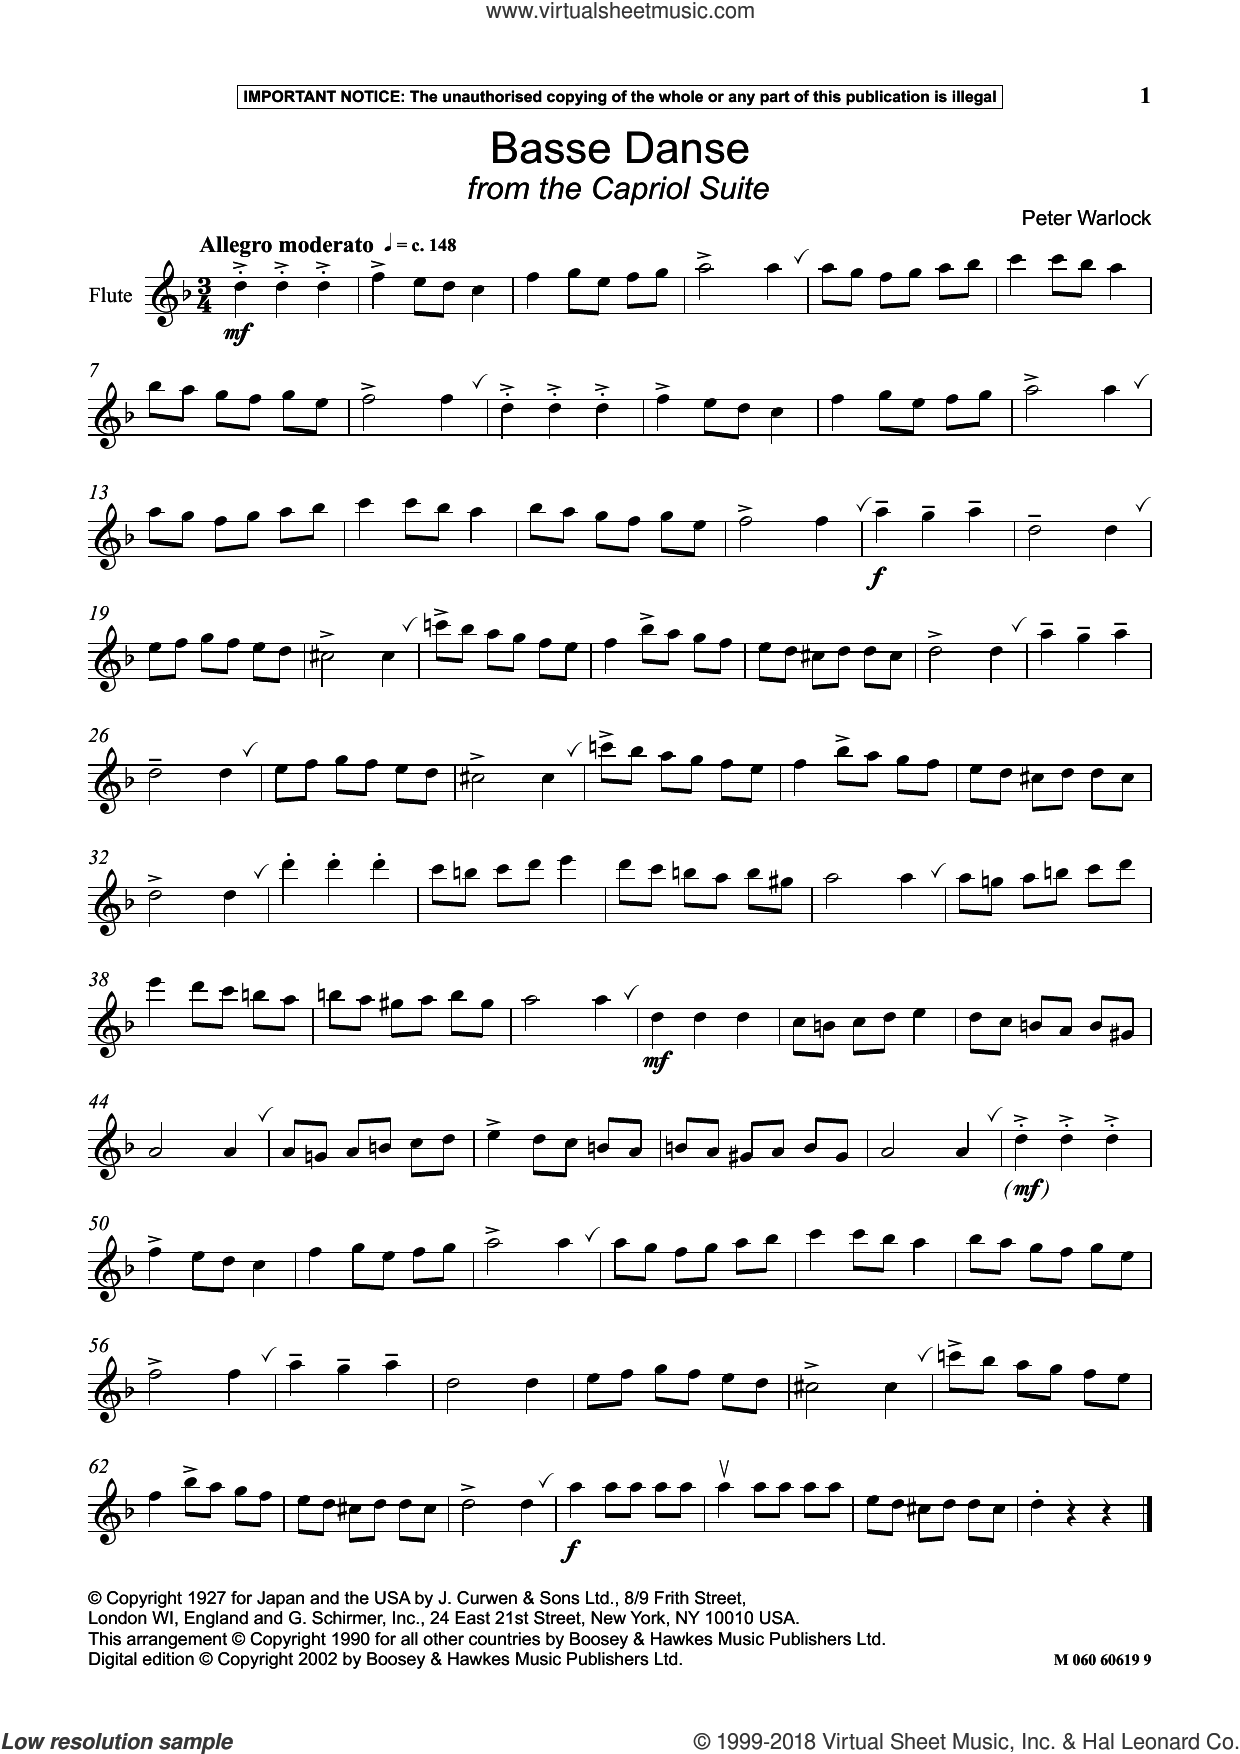 Basse Danse (from The Capriol Suite) sheet music for flute solo by Peter Warlock, intermediate skill level